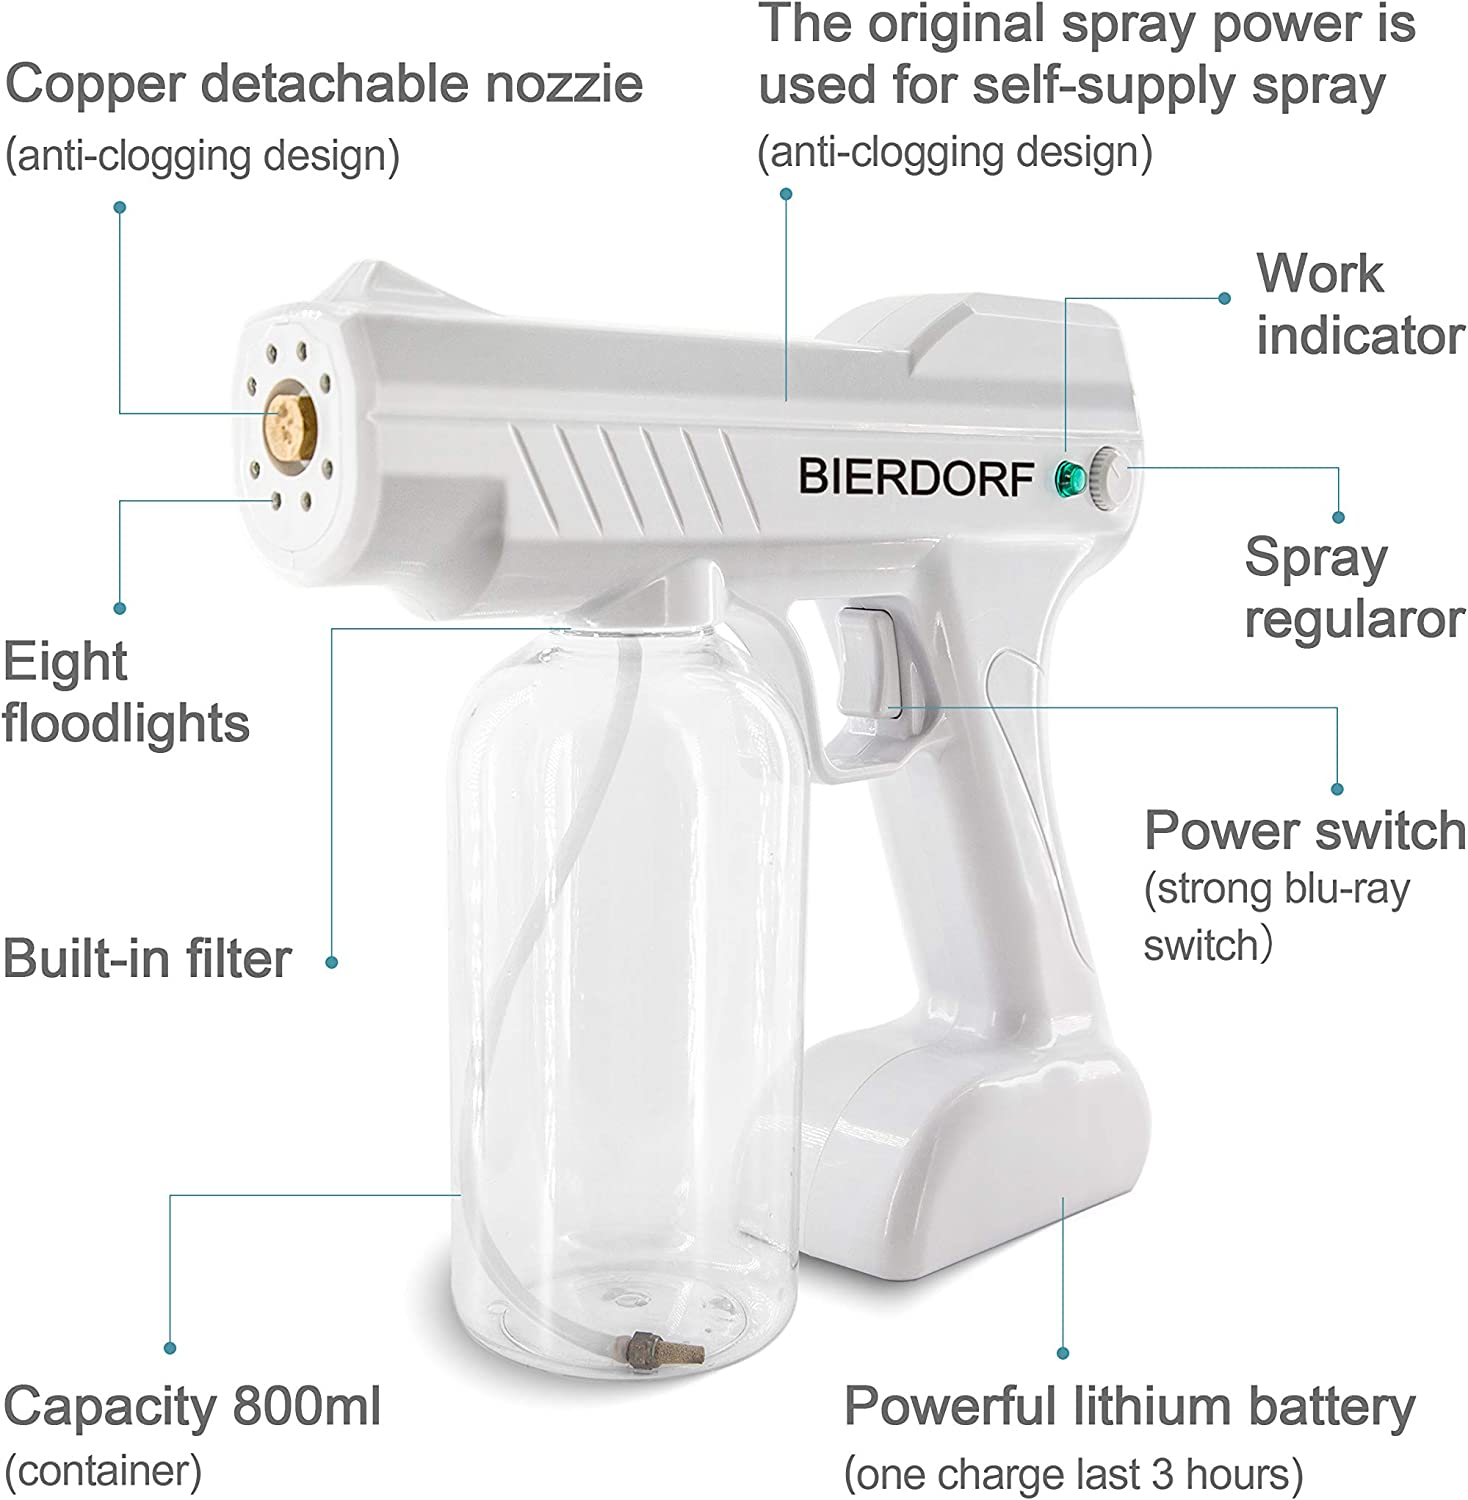 BIERDORF Nano Spray Fogger Sterilization Atomizer 800ml Cordless Charging Electric ULV Sprayer Portable Disinfection Fogger Wireless Handheld Steam Spray Disinfection Fog Tool